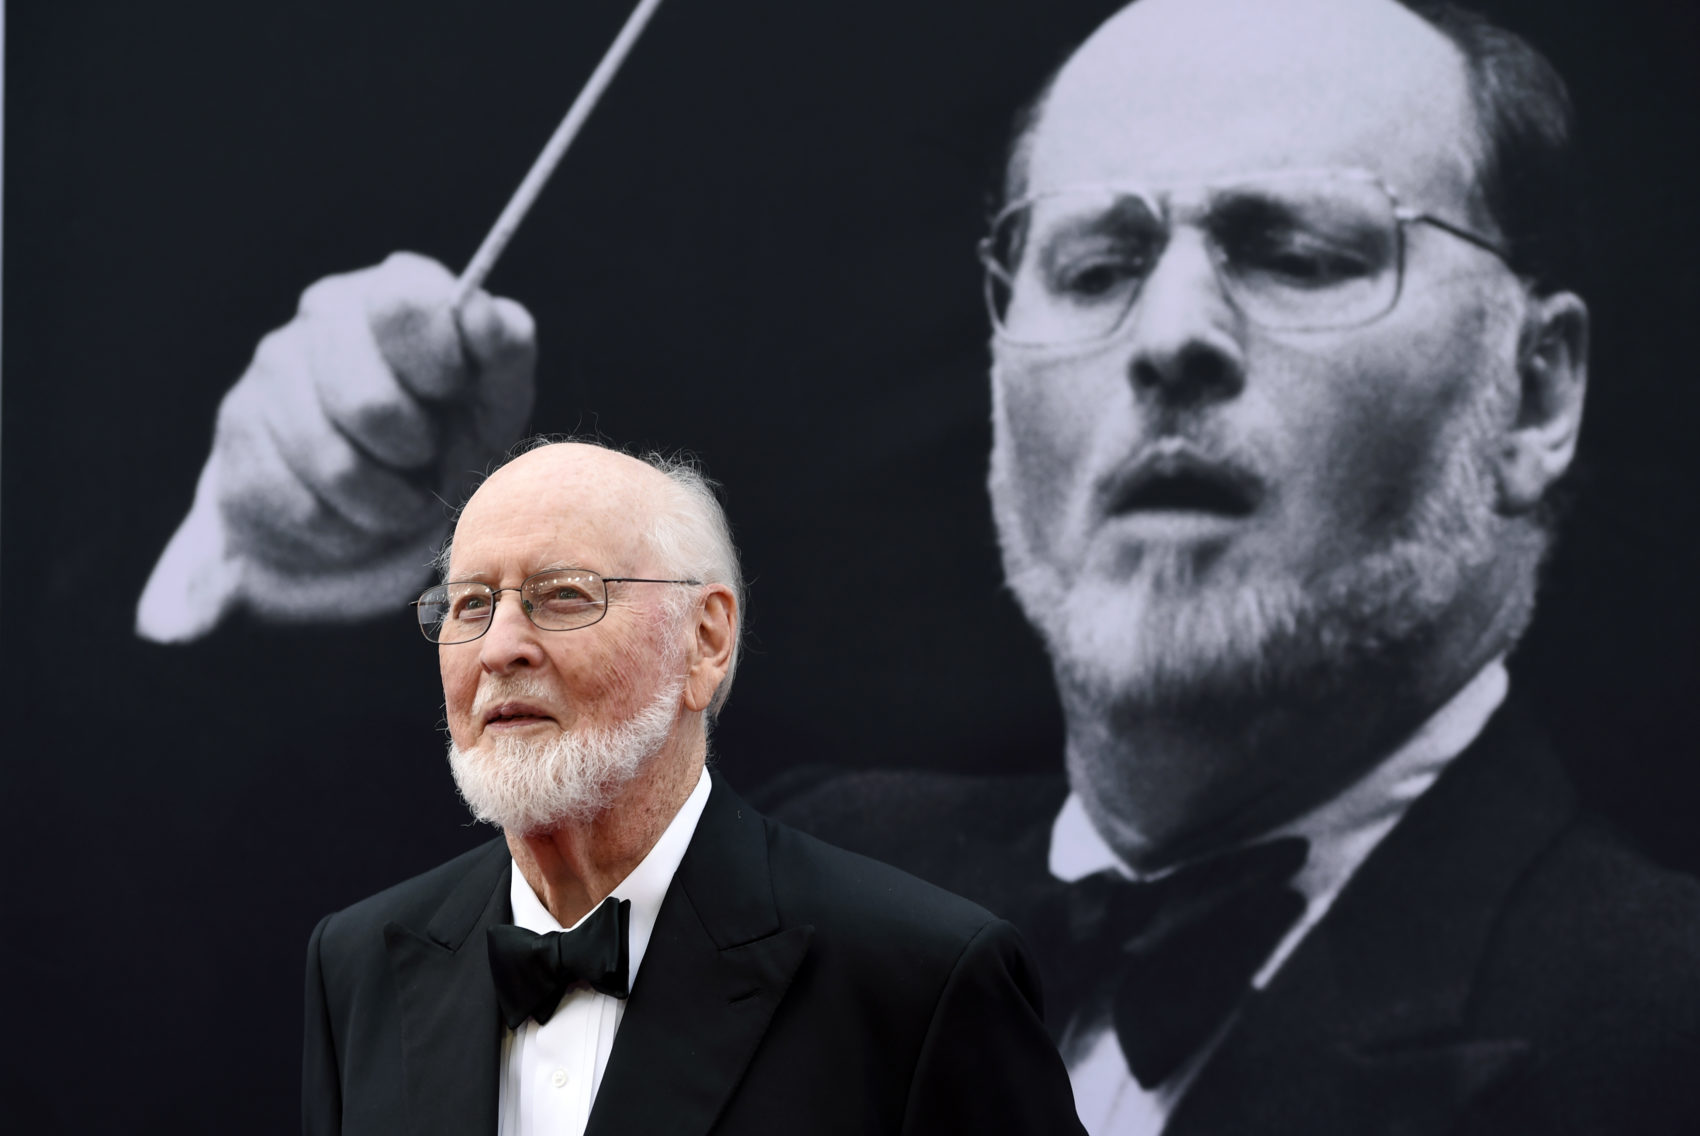 John Williams poses on the red carpet at the 2016 AFI Life Achievement Award Gala Tribute to himself at the Dolby Theatre in Los Angeles. (Chris Pizzello/Invision/AP)